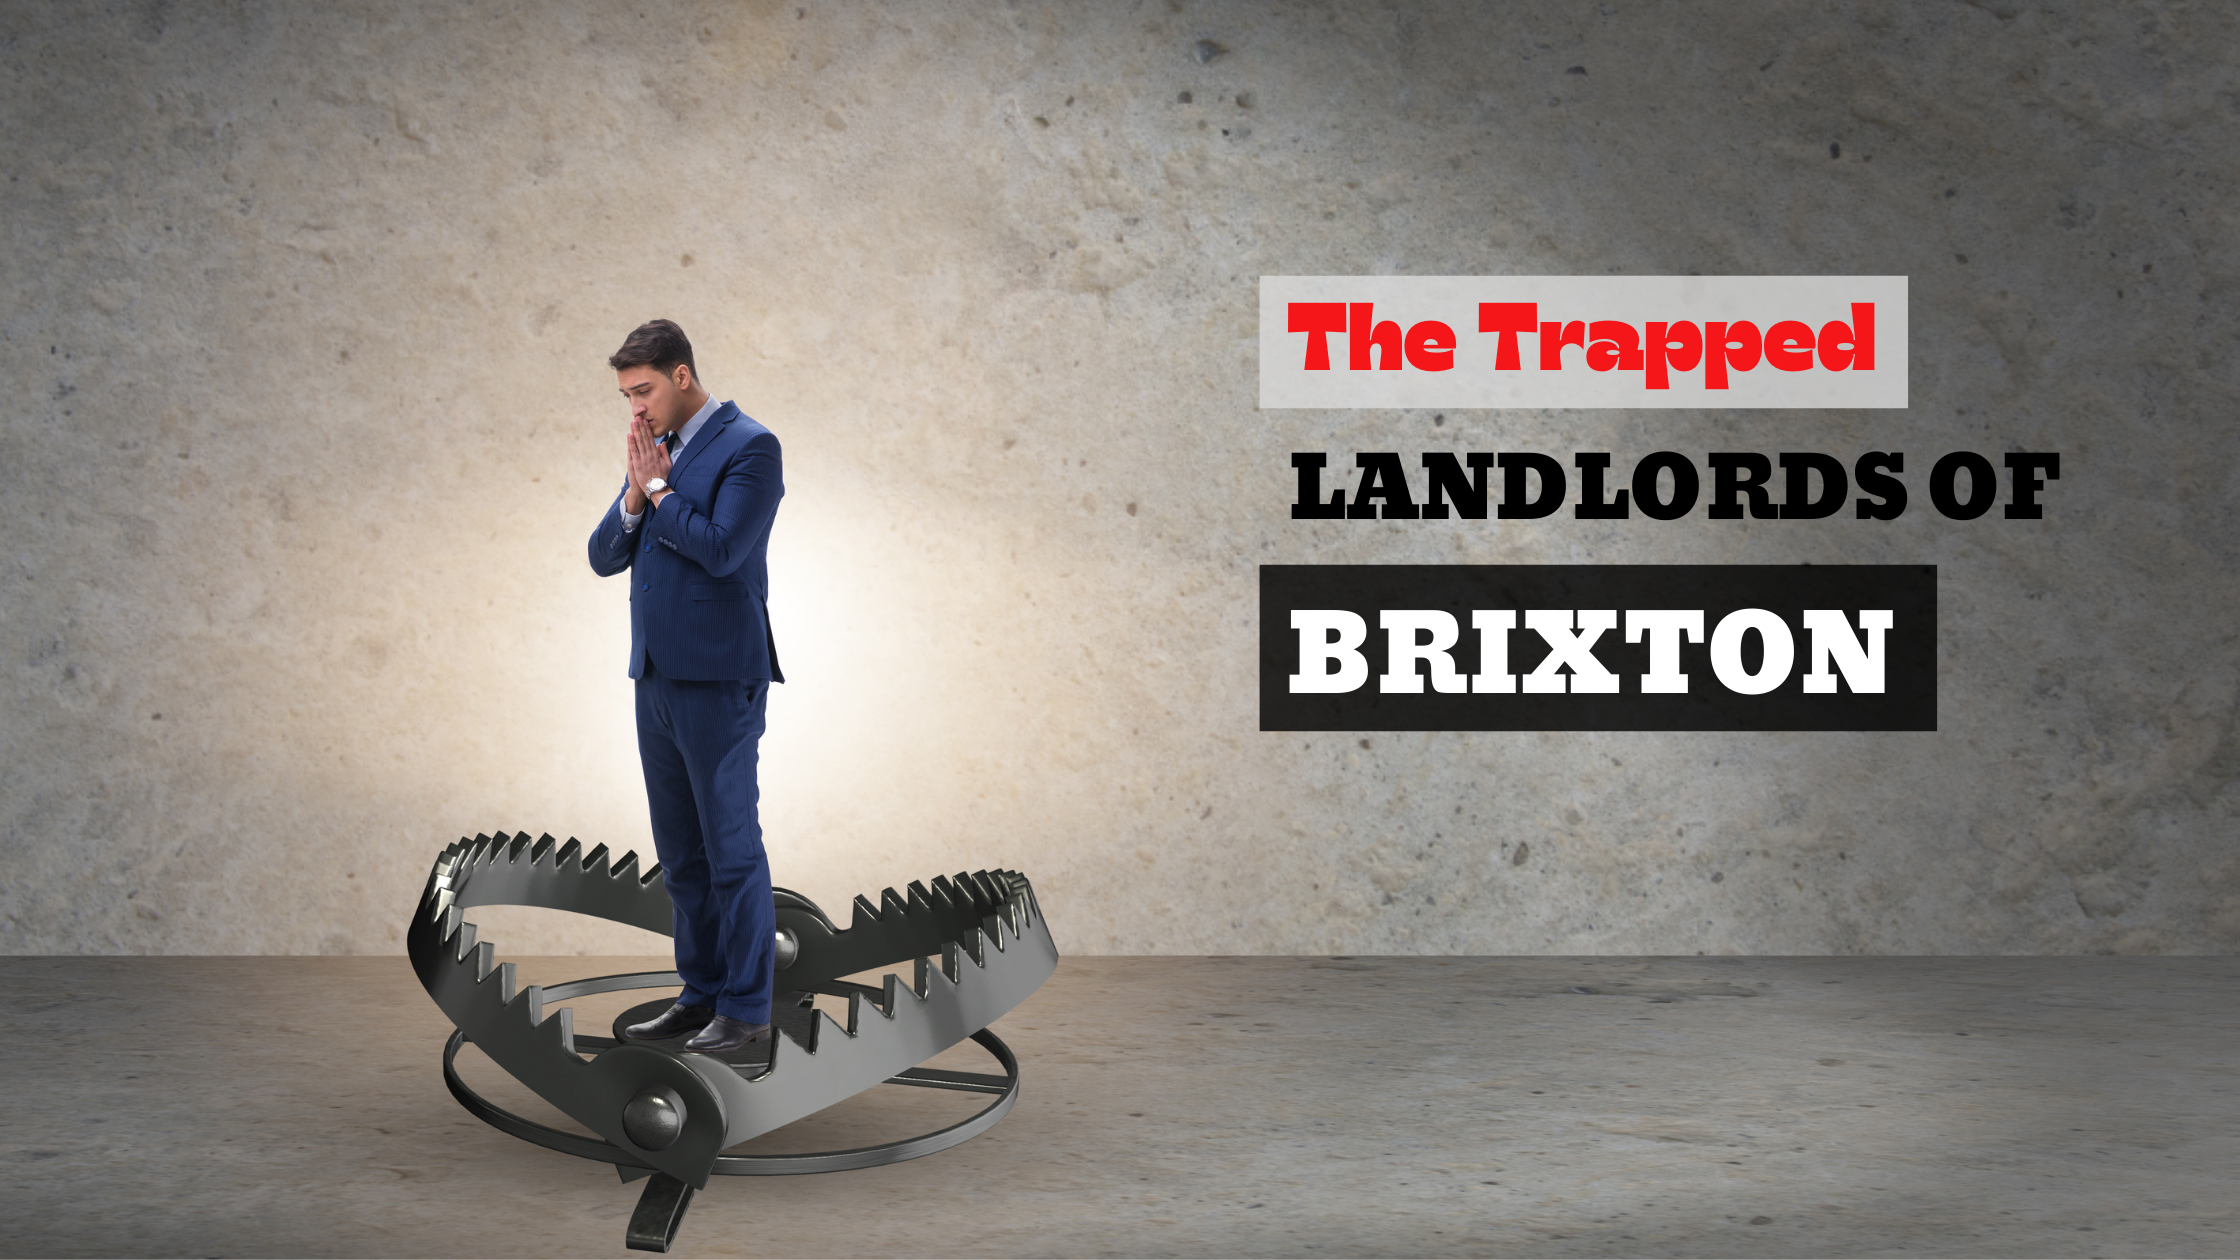 The Trapped Landlords of Gratham